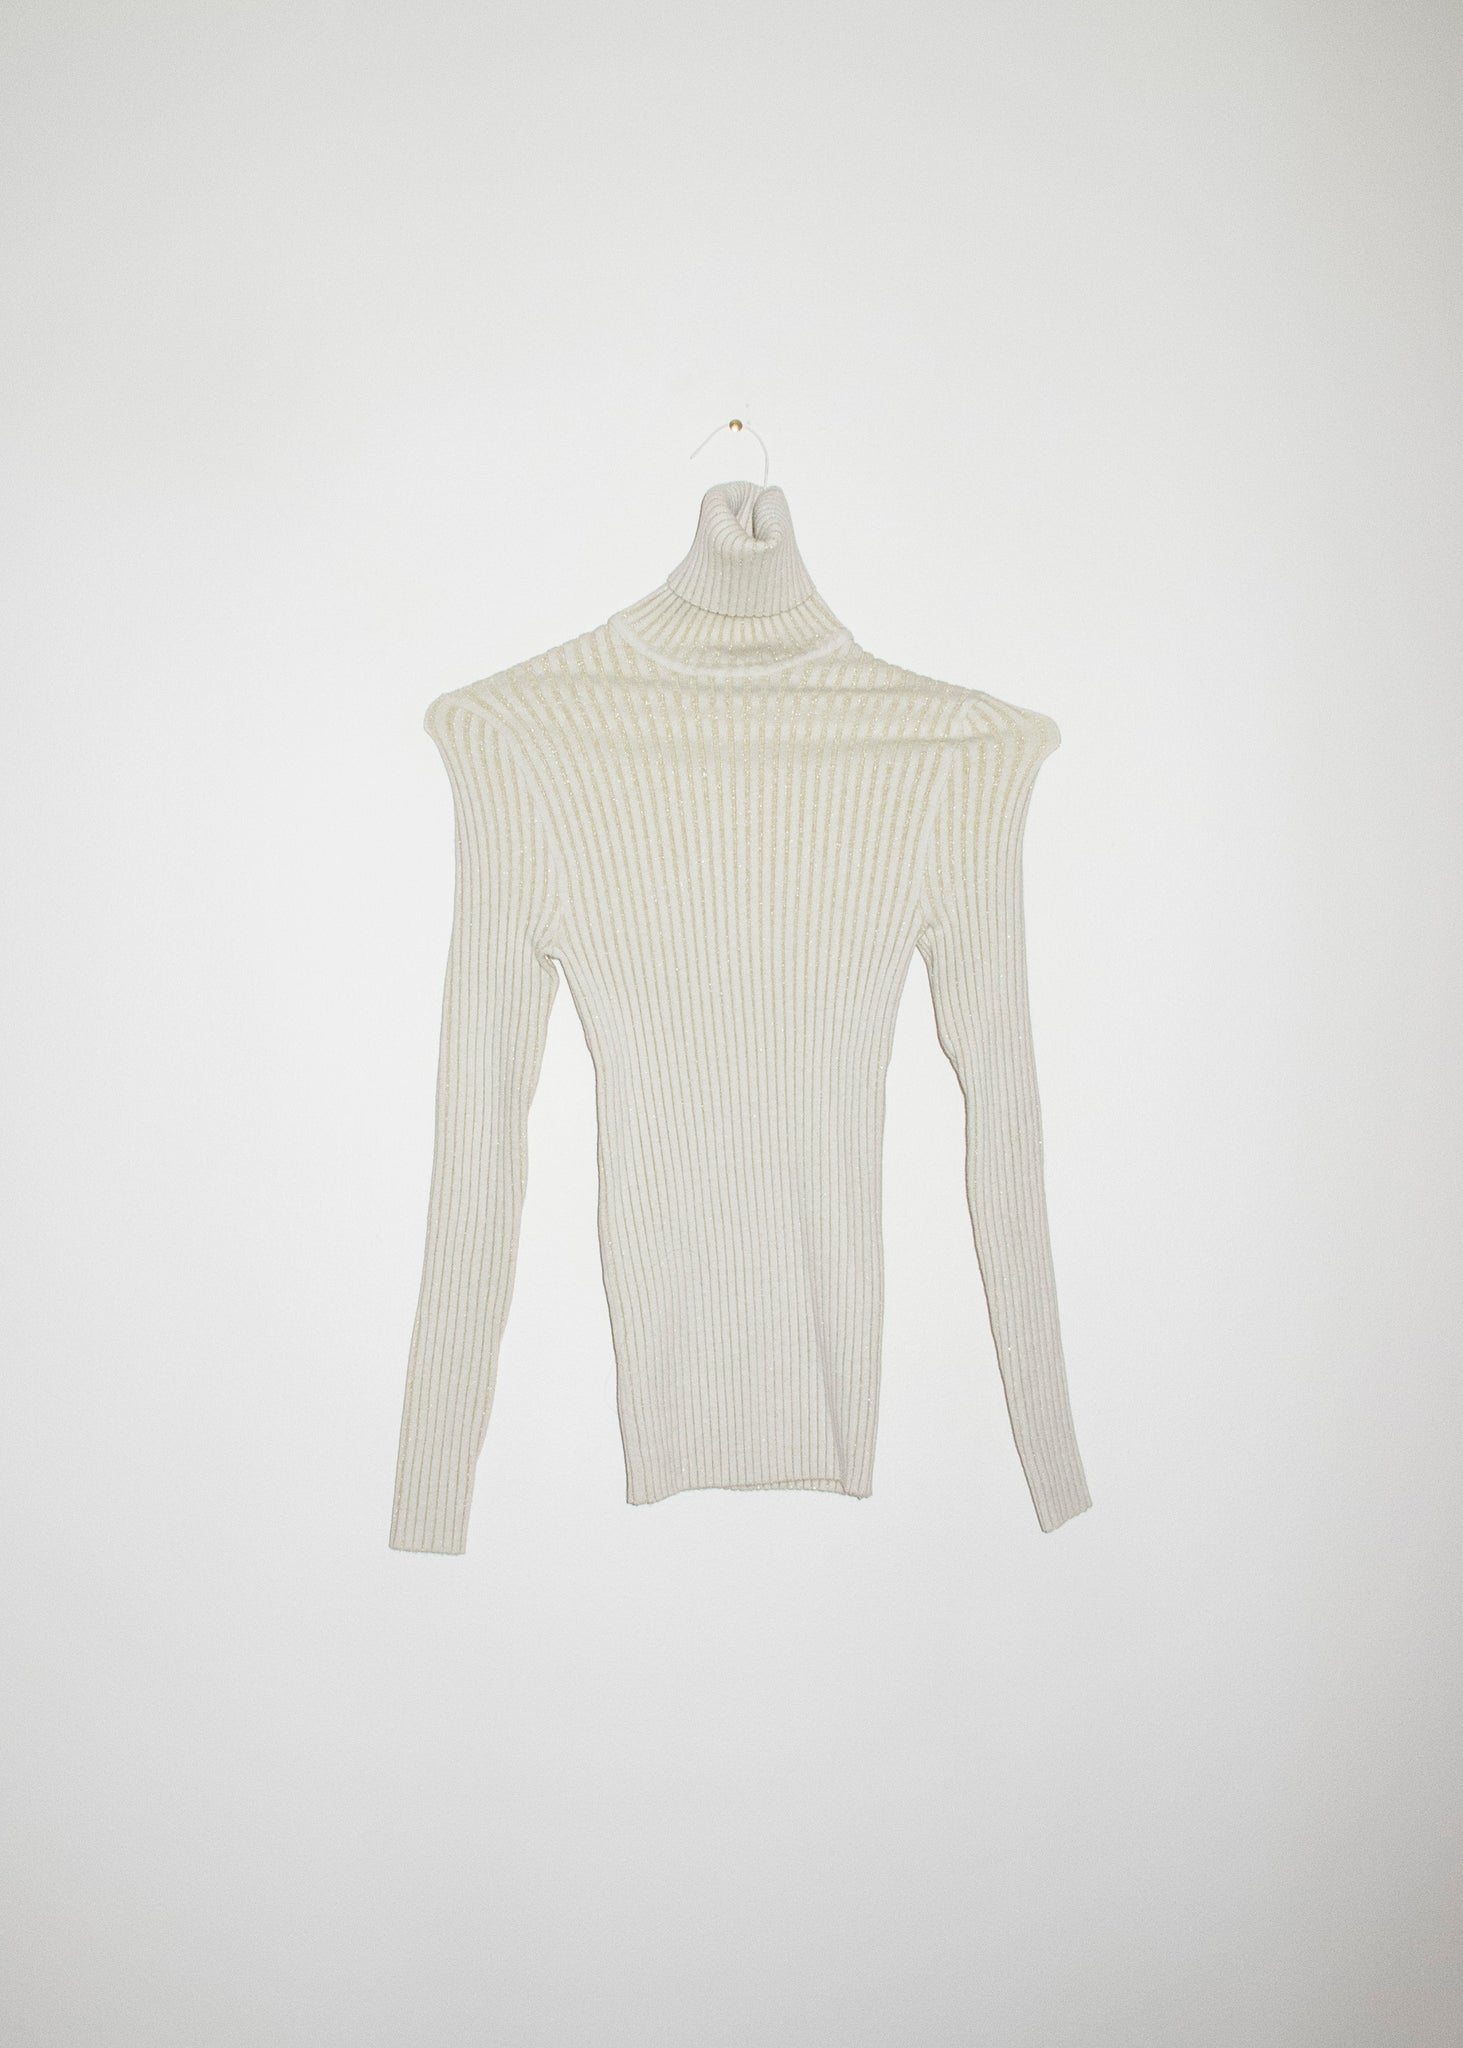 NONNA Turtleneck in Ivory Gold Glitter